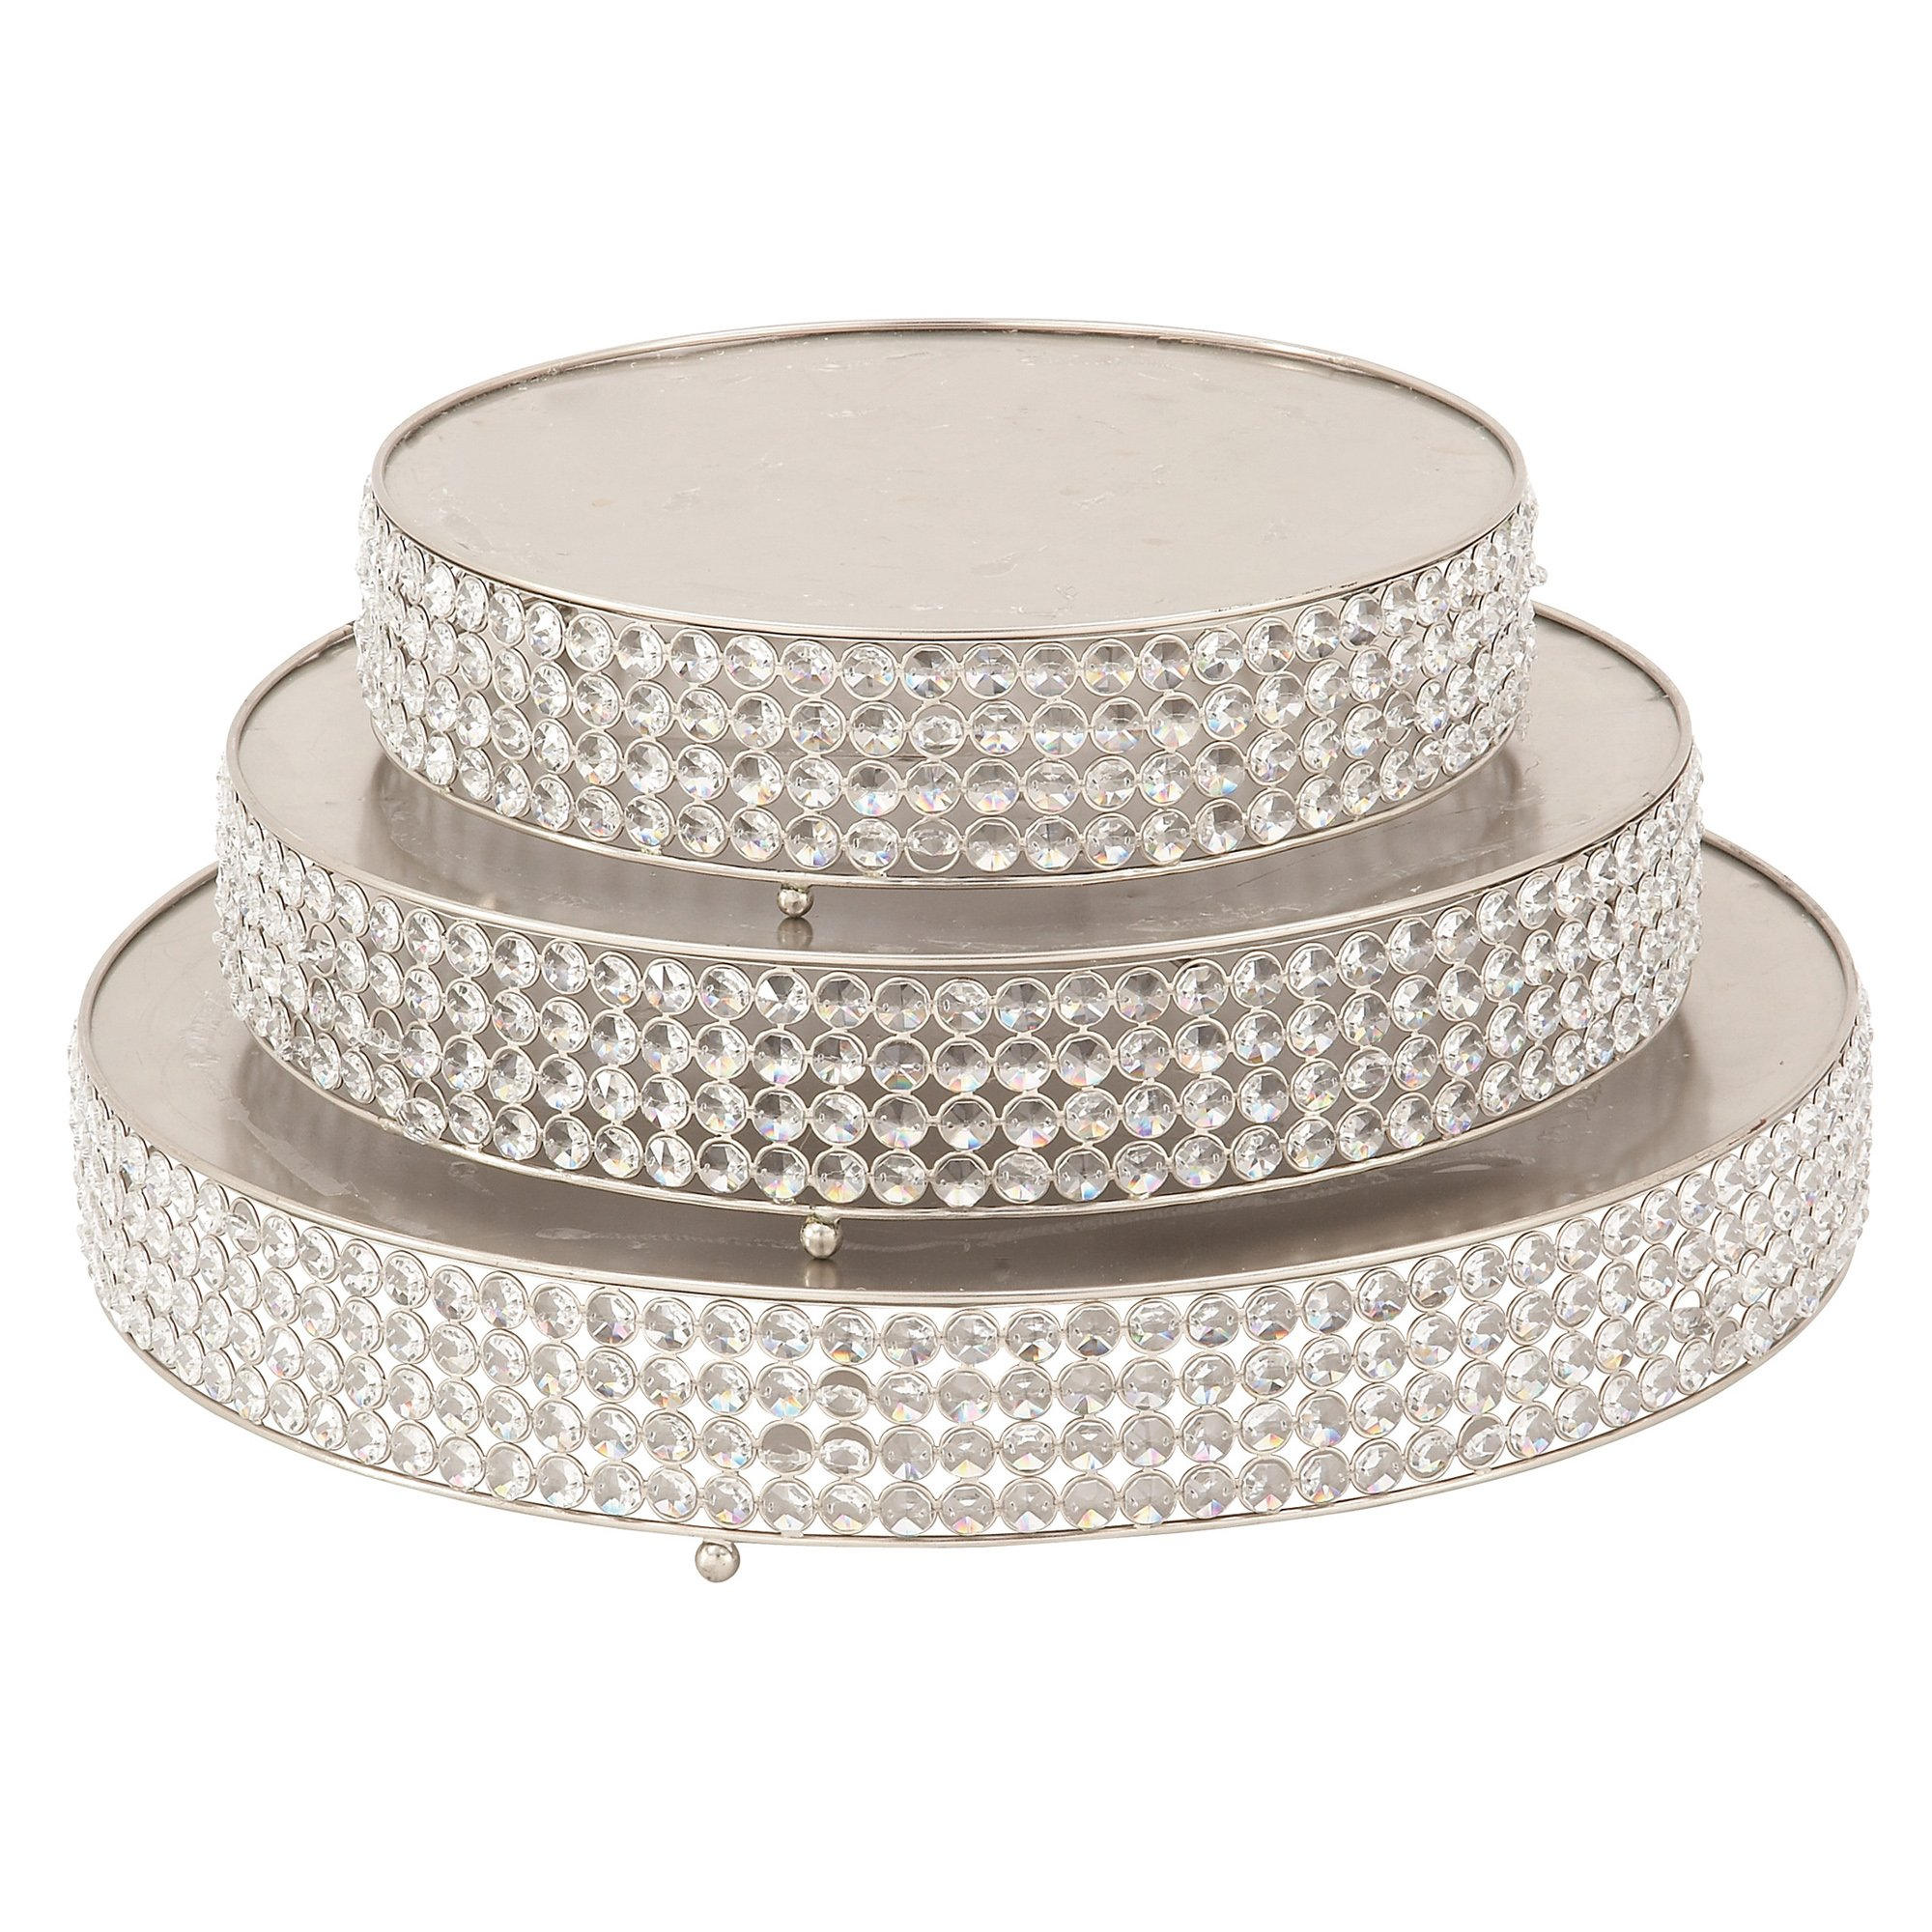 Urban Designs 7776245 Party Essentials Round Silver Bead Cake Stand - Set of 3,Silver